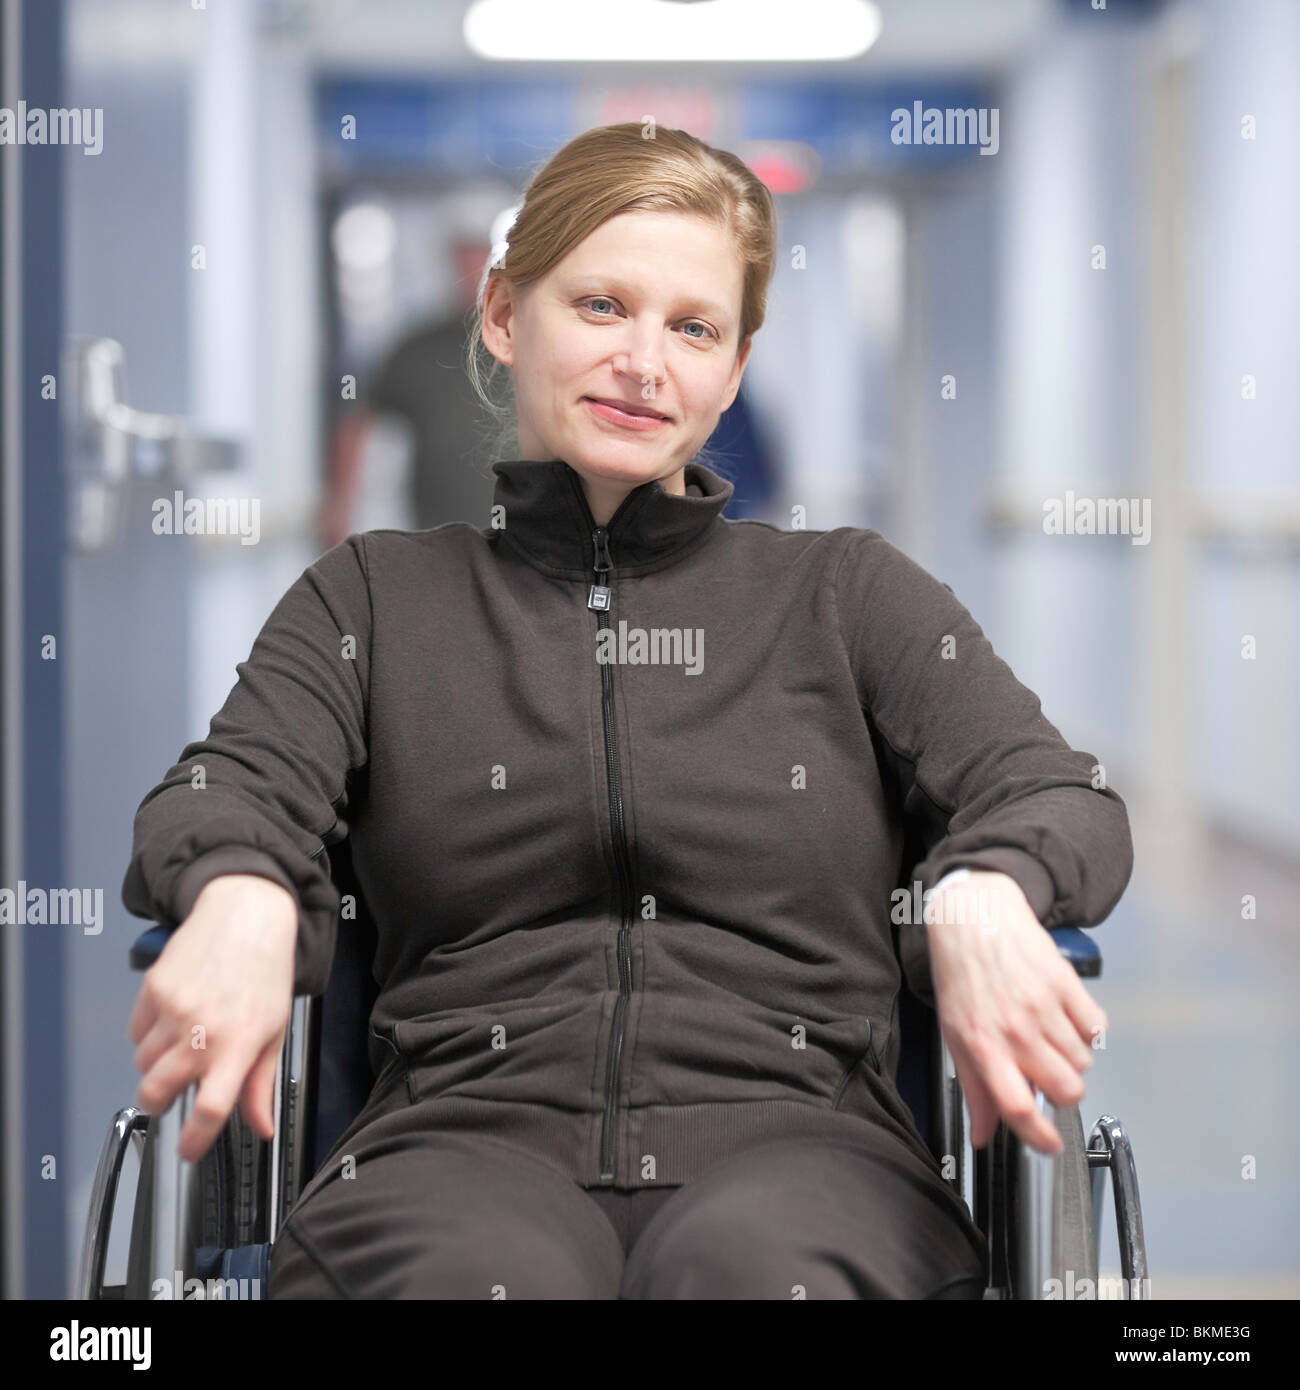 Woman patient in a wheelchair, in a hospital hallway. - Stock Image